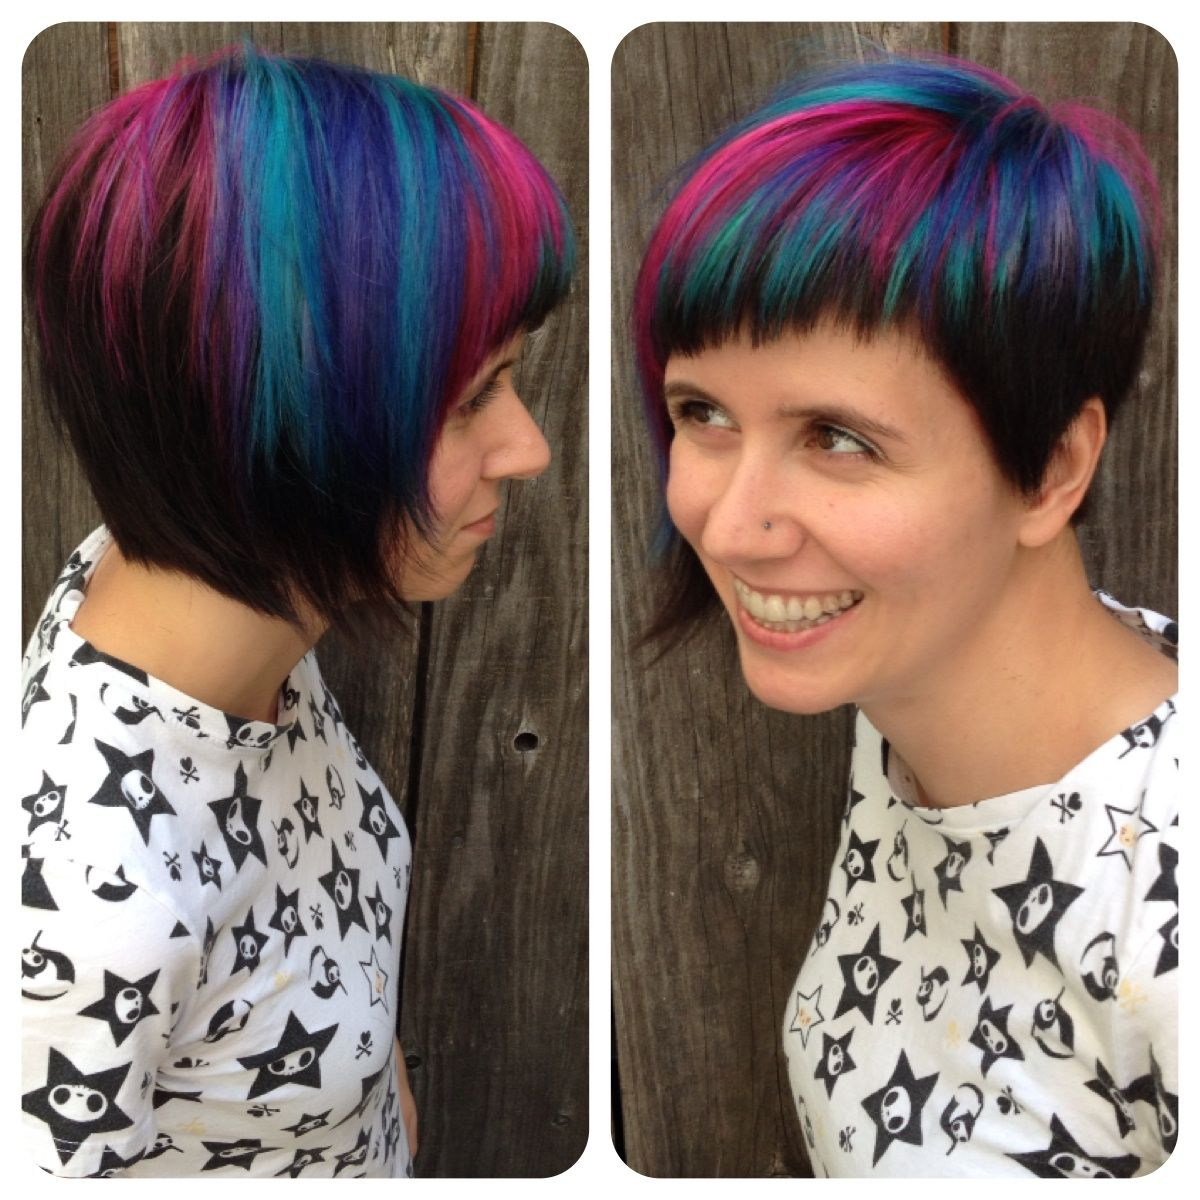 Asymmetrical bob and rainbow colors color u cut by katey mcmuffin